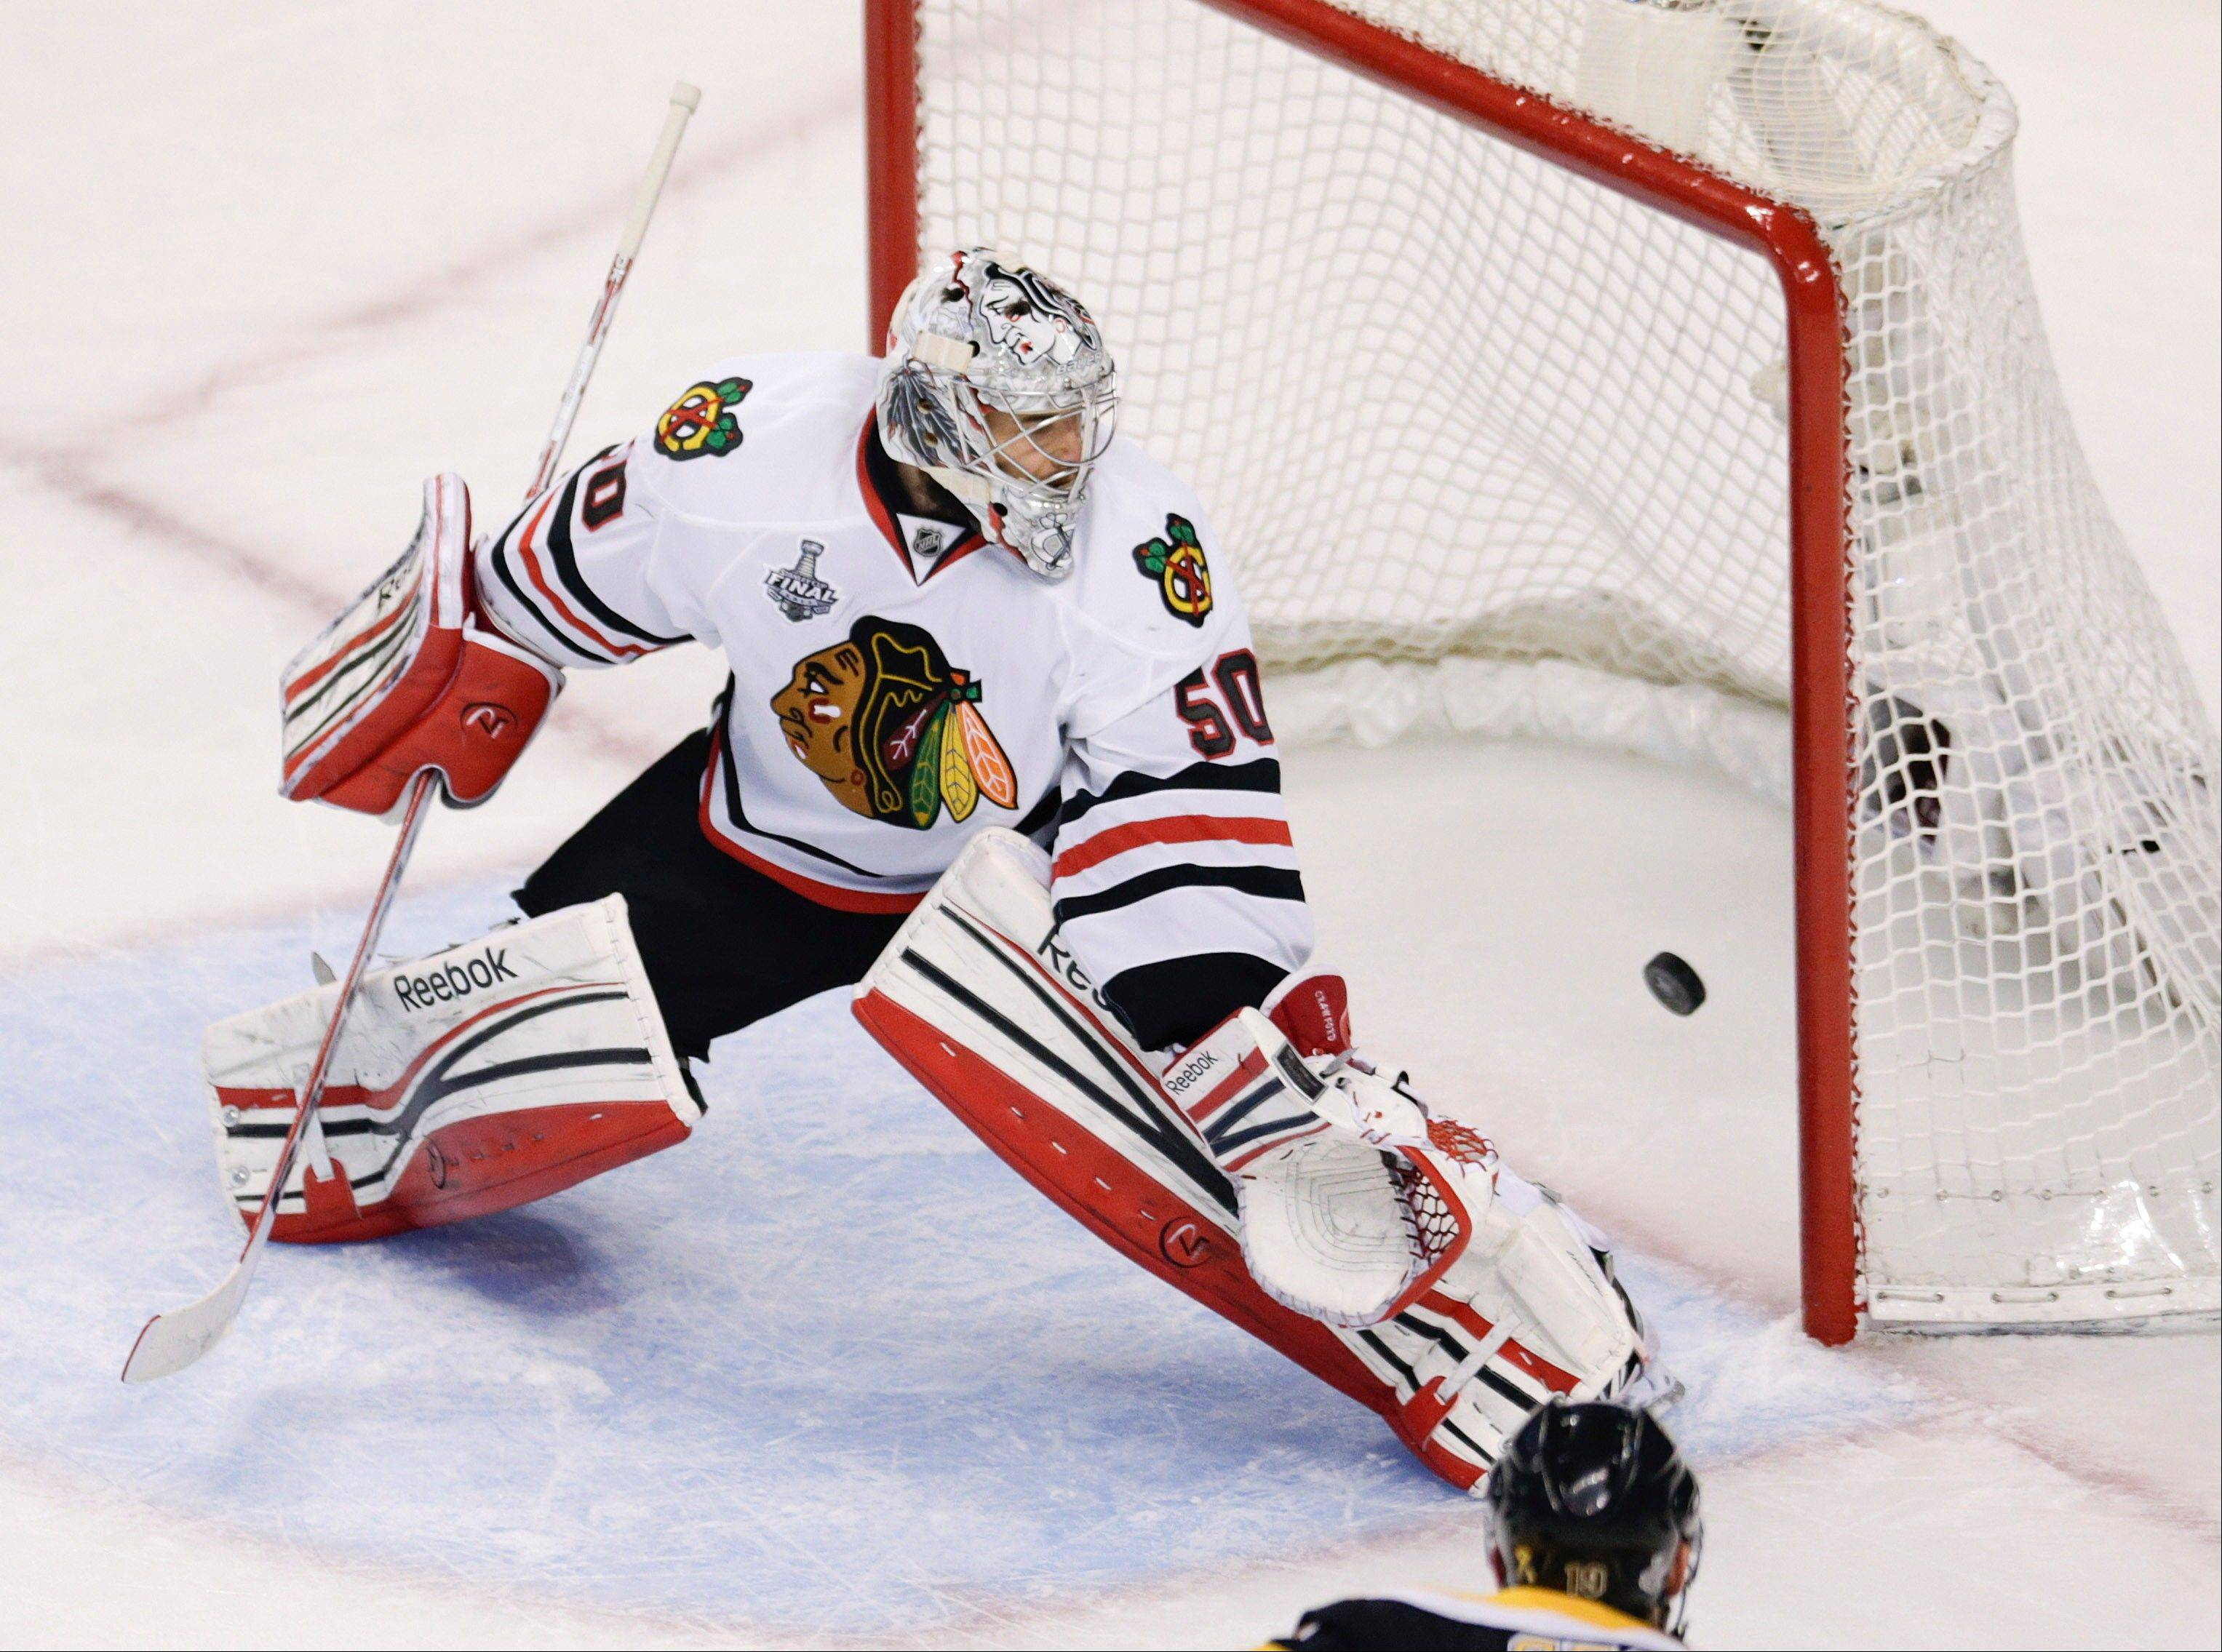 The puck, shot by Boston Bruins center Rich Peverley, not seen, finds the net behind Chicago Blackhawks goalie Corey Crawford (50) for a goal during the first period in Game 4 of the NHL hockey Stanley Cup Finals.